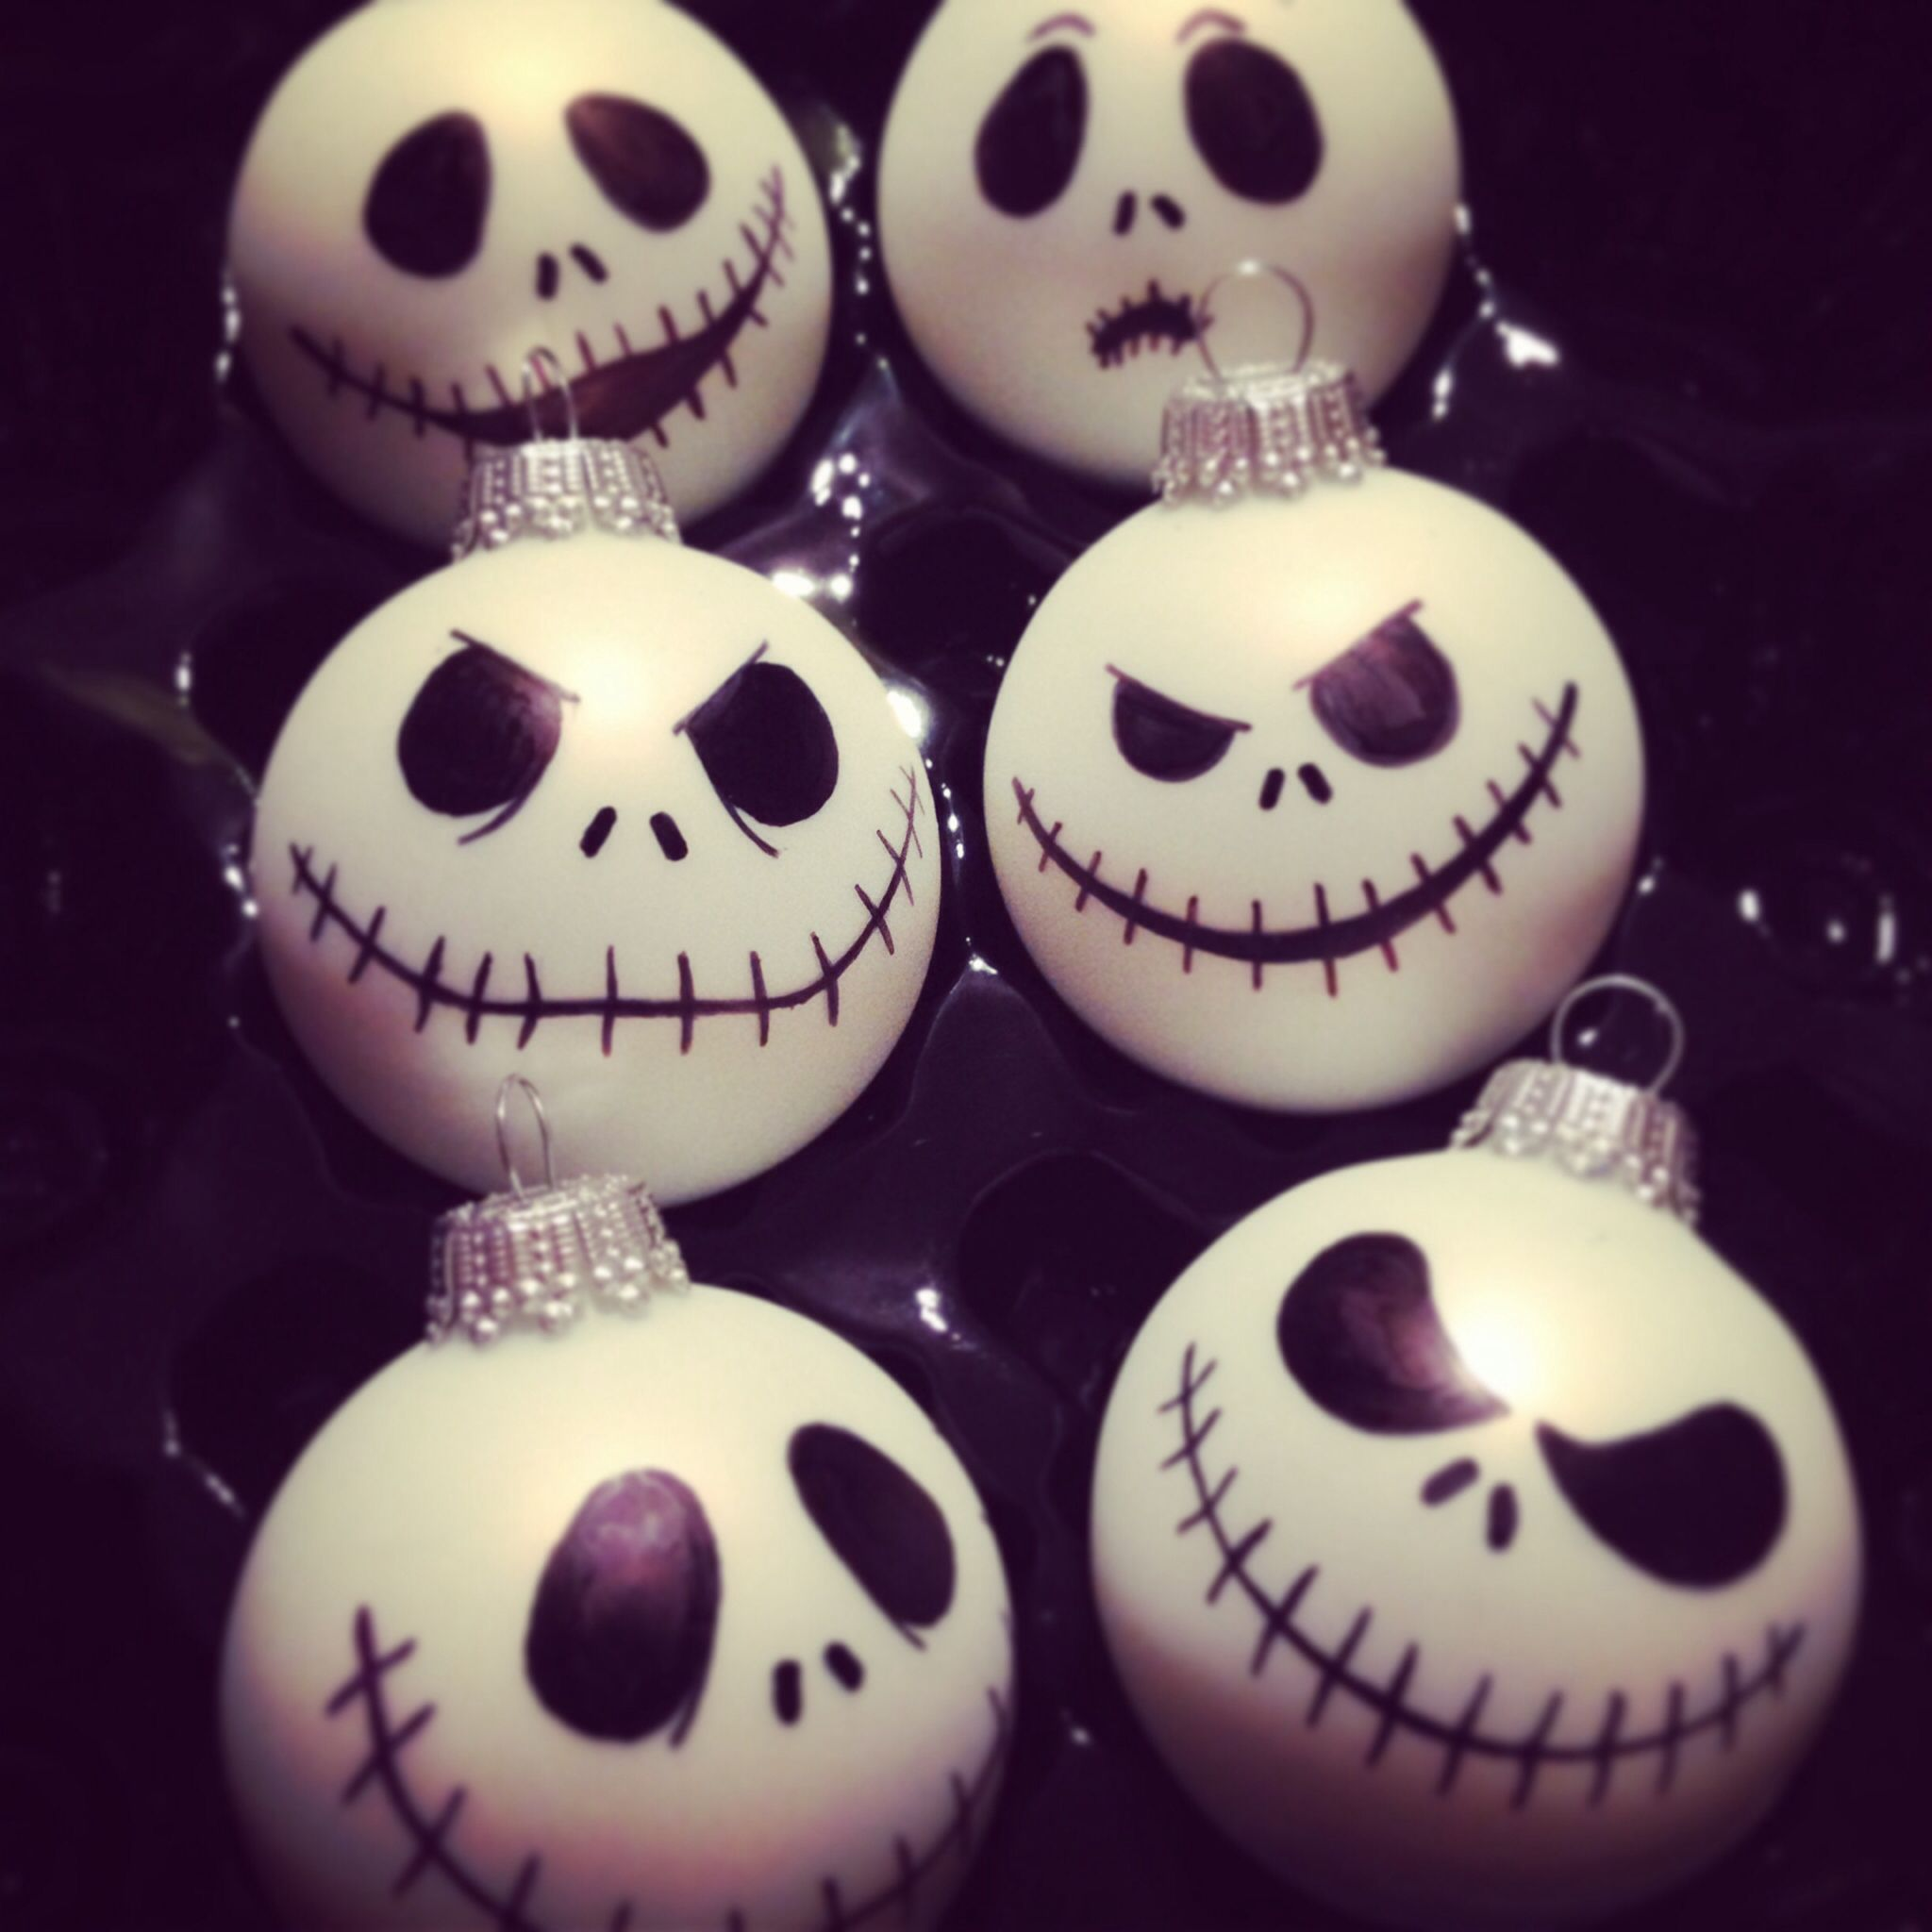 The nightmare before christmas ornaments - Diy Nightmare Before Christmas Ornaments Not Sure I Would Use Them Myself